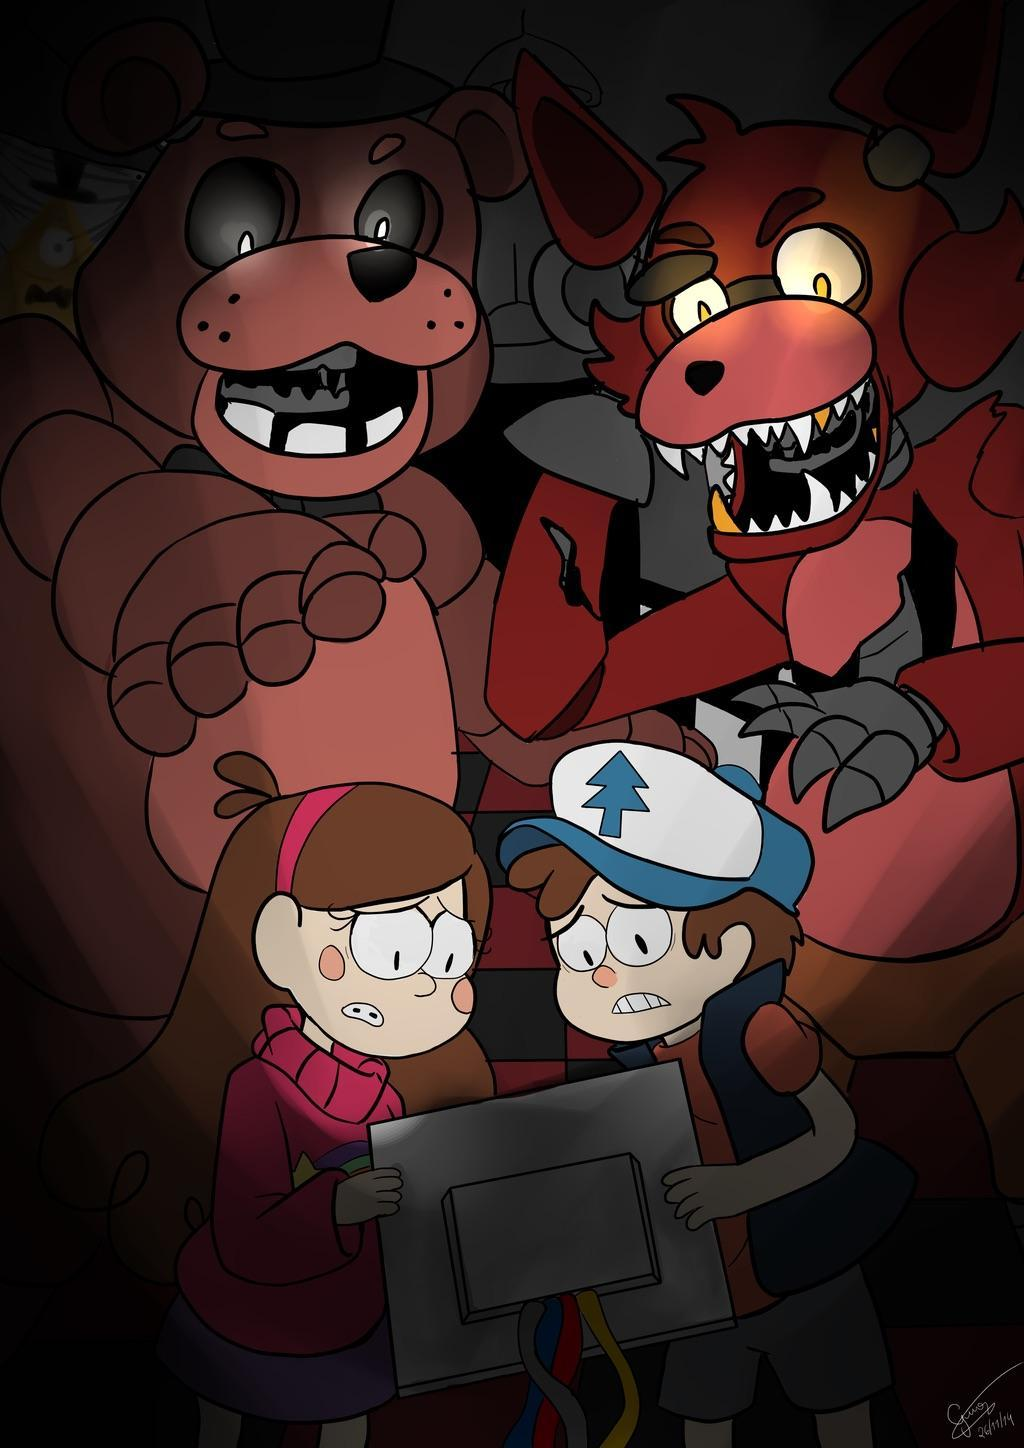 Gravity falls FNAF crossover! Part 1